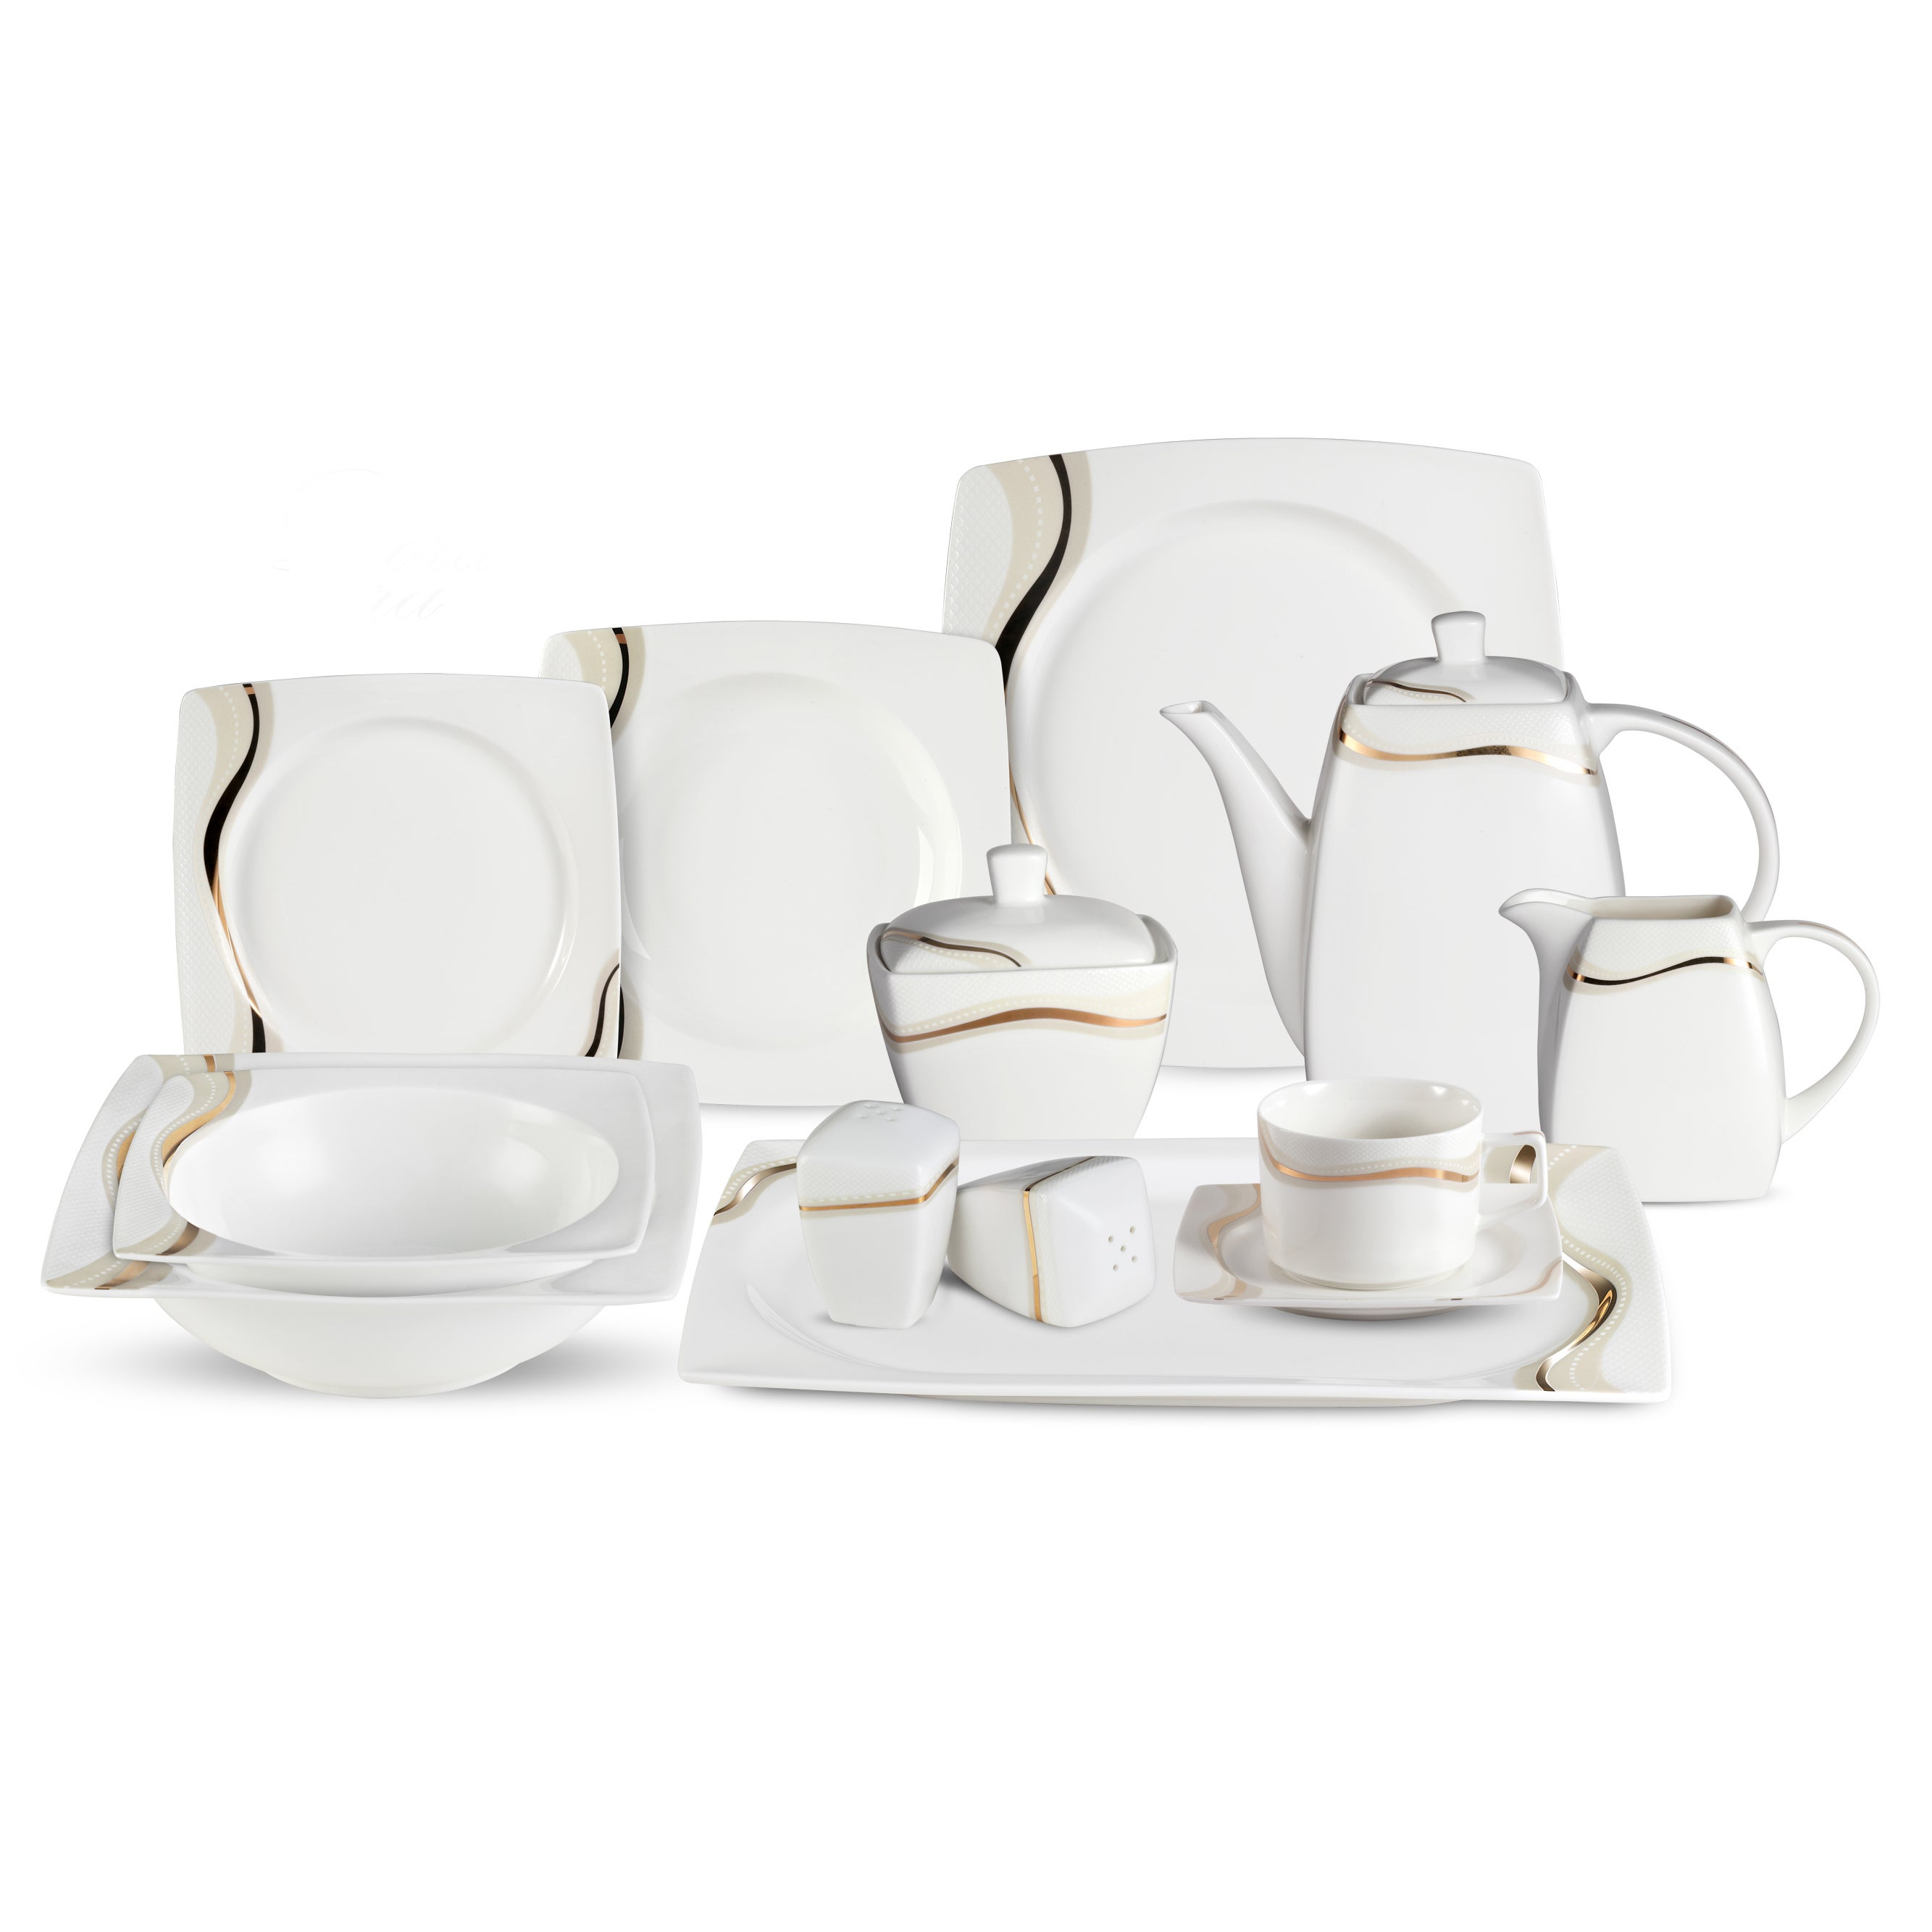 Lorren Home Trend Dora 57-Piece Bone China Dinnerware Set (Service for 8) - Free Shipping Today - Overstock - 17661895  sc 1 st  Overstock.com & Lorren Home Trend Dora 57-Piece Bone China Dinnerware Set (Service ...